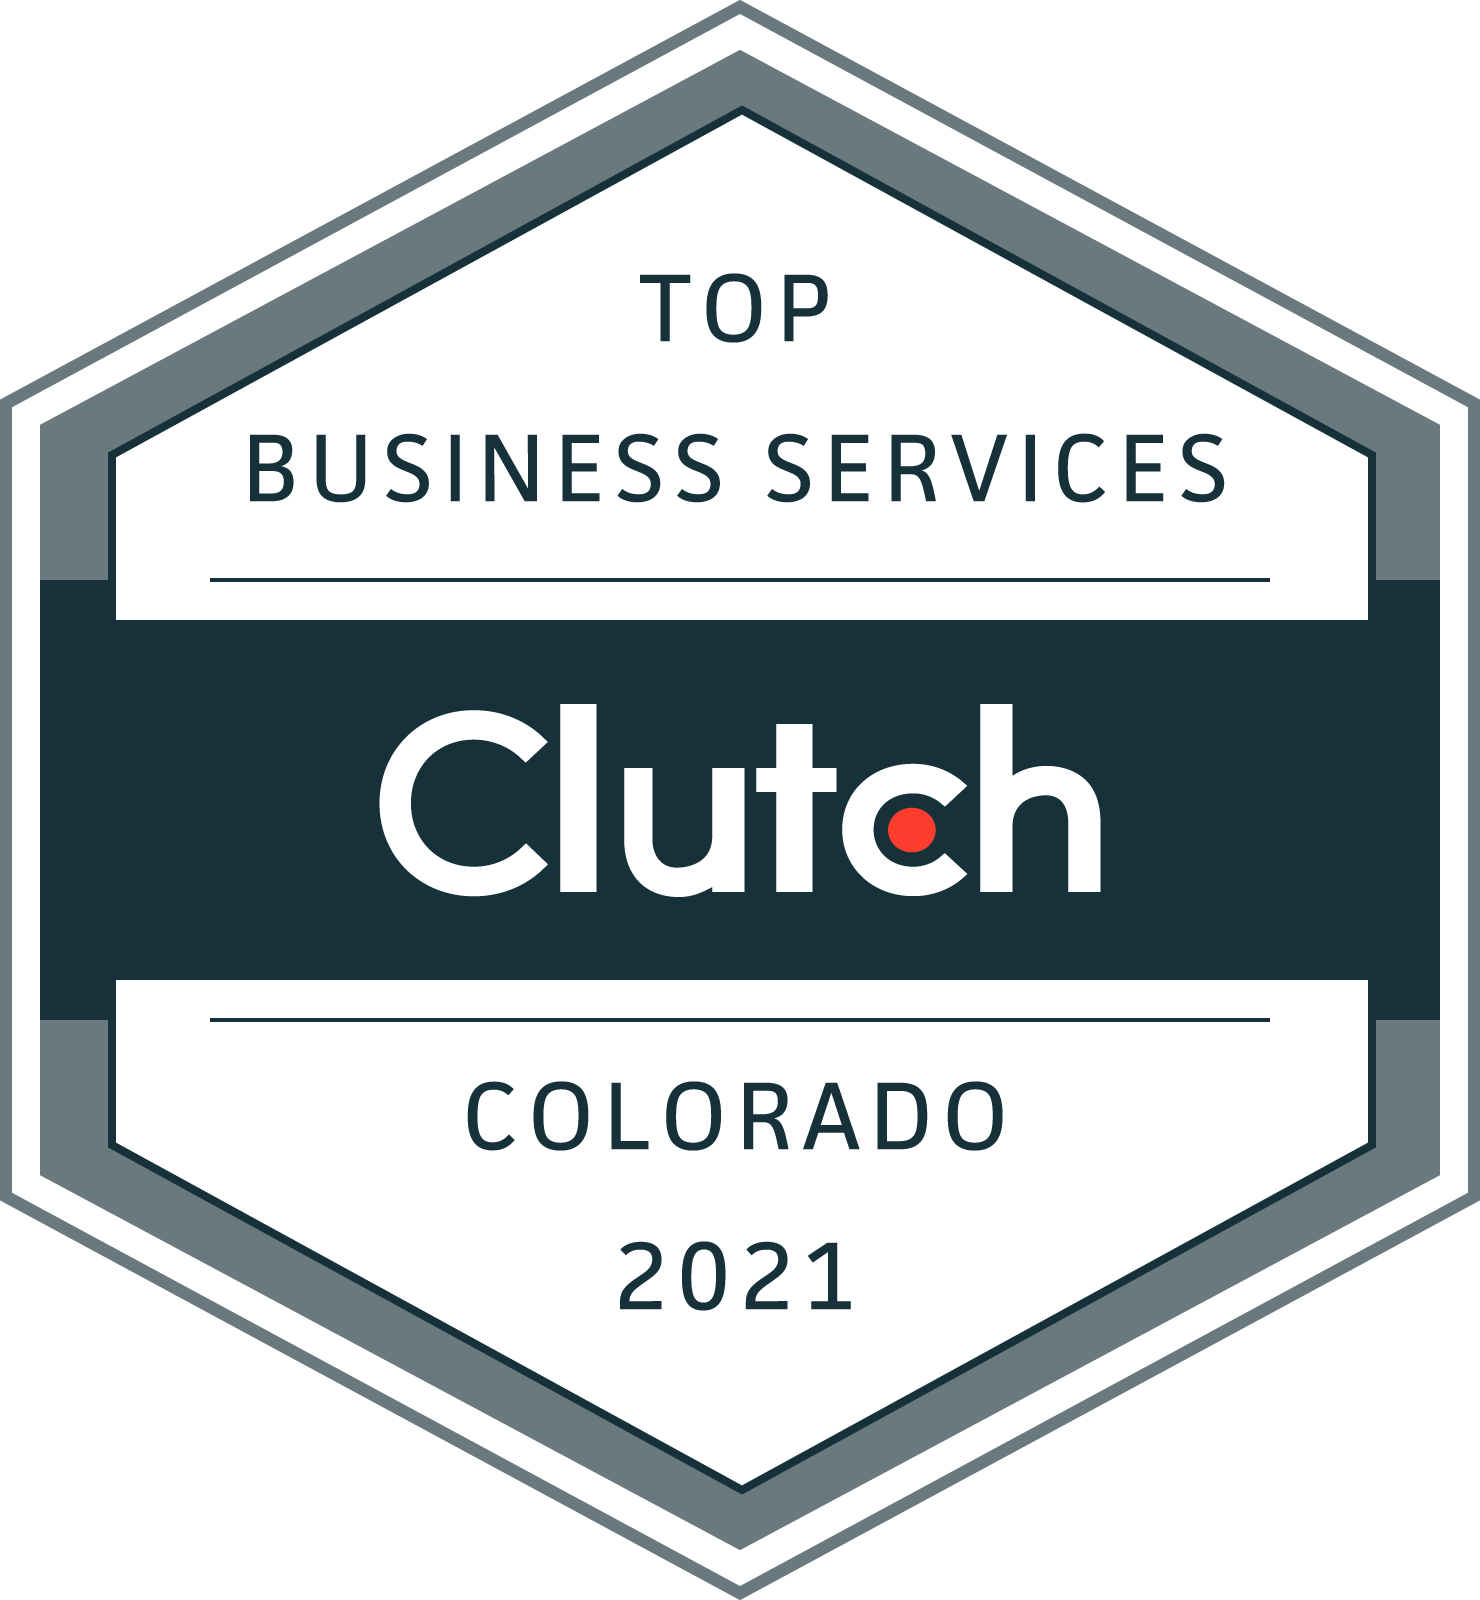 Pico Digital Marketing has been recognized as a 2021 Top Services Provider by Clutch